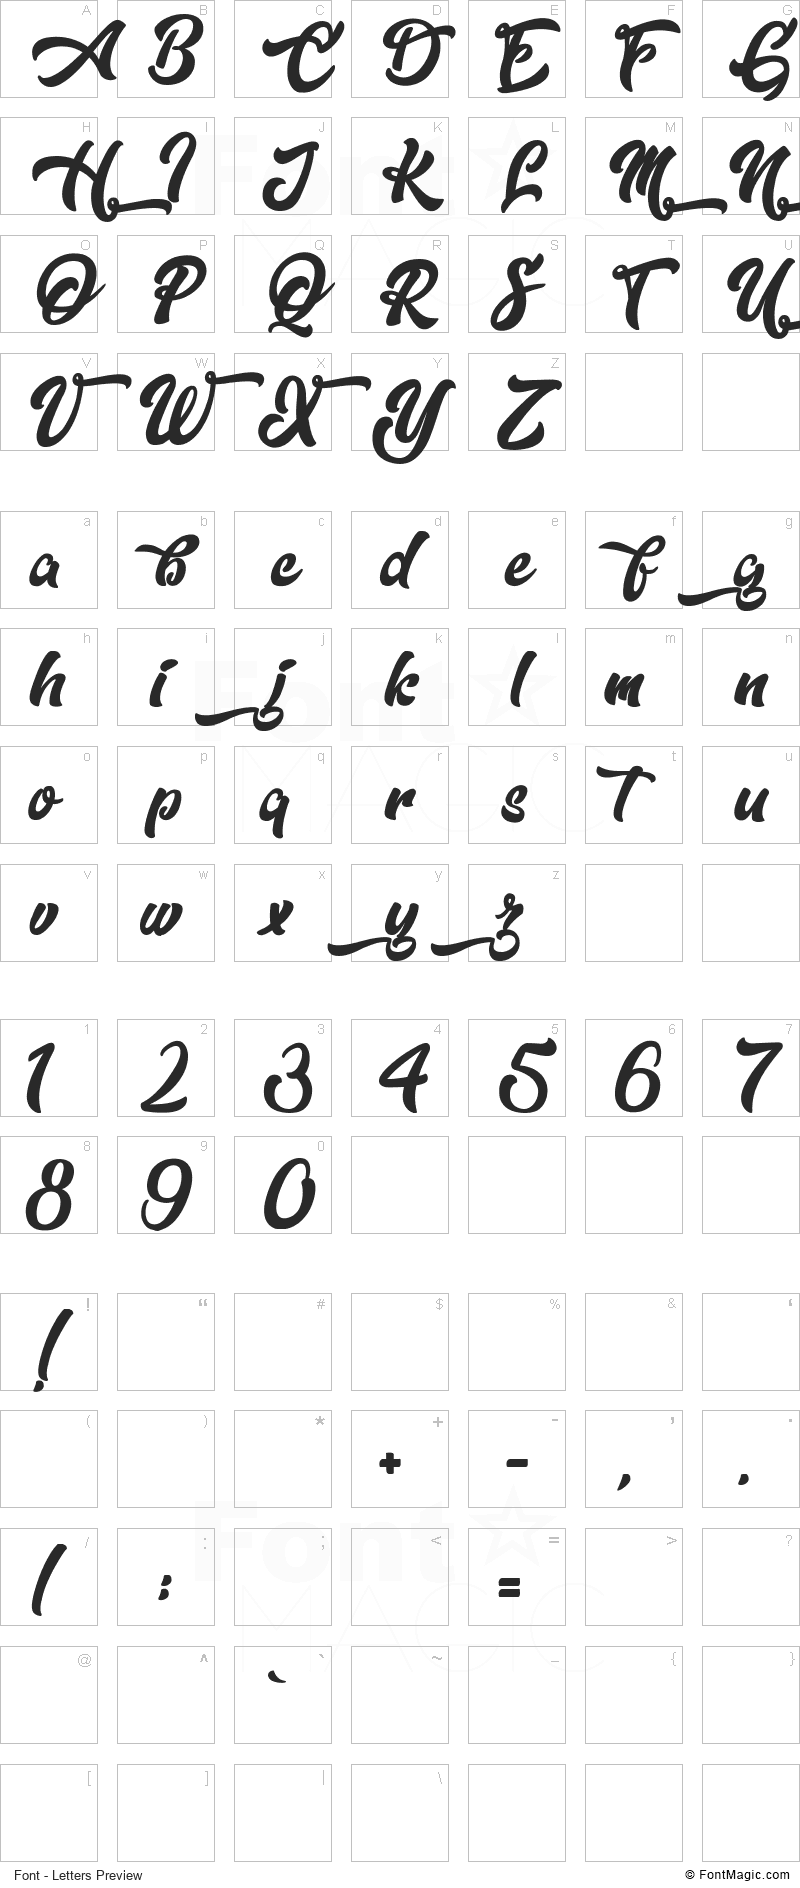 Dopestyle Font - All Latters Preview Chart